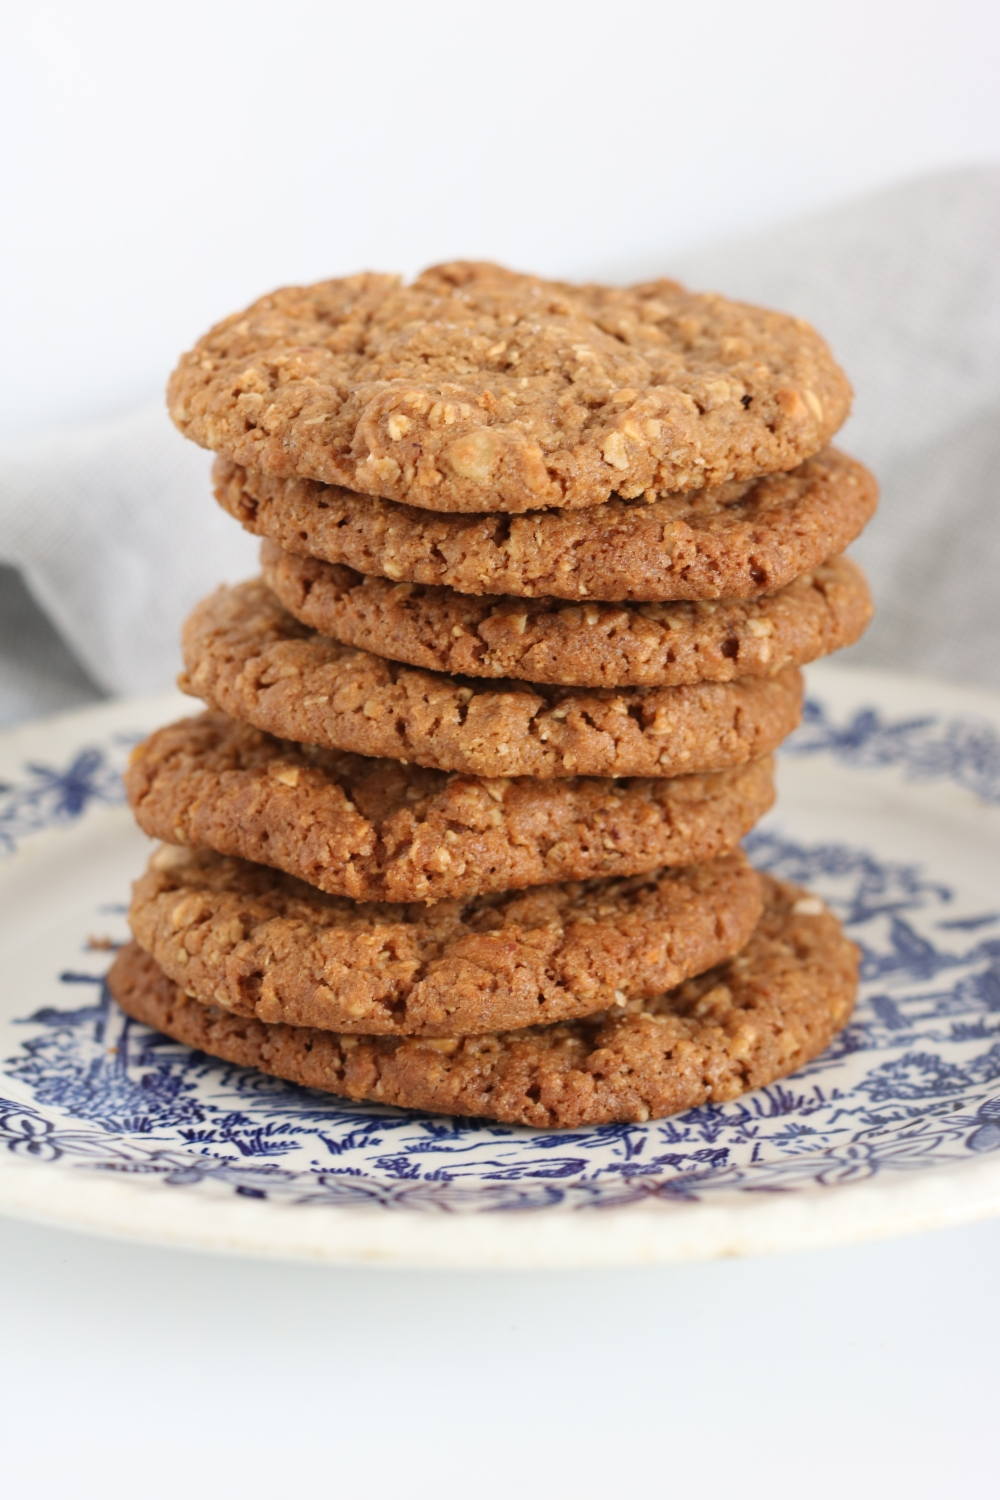 Coco-nuts cookies